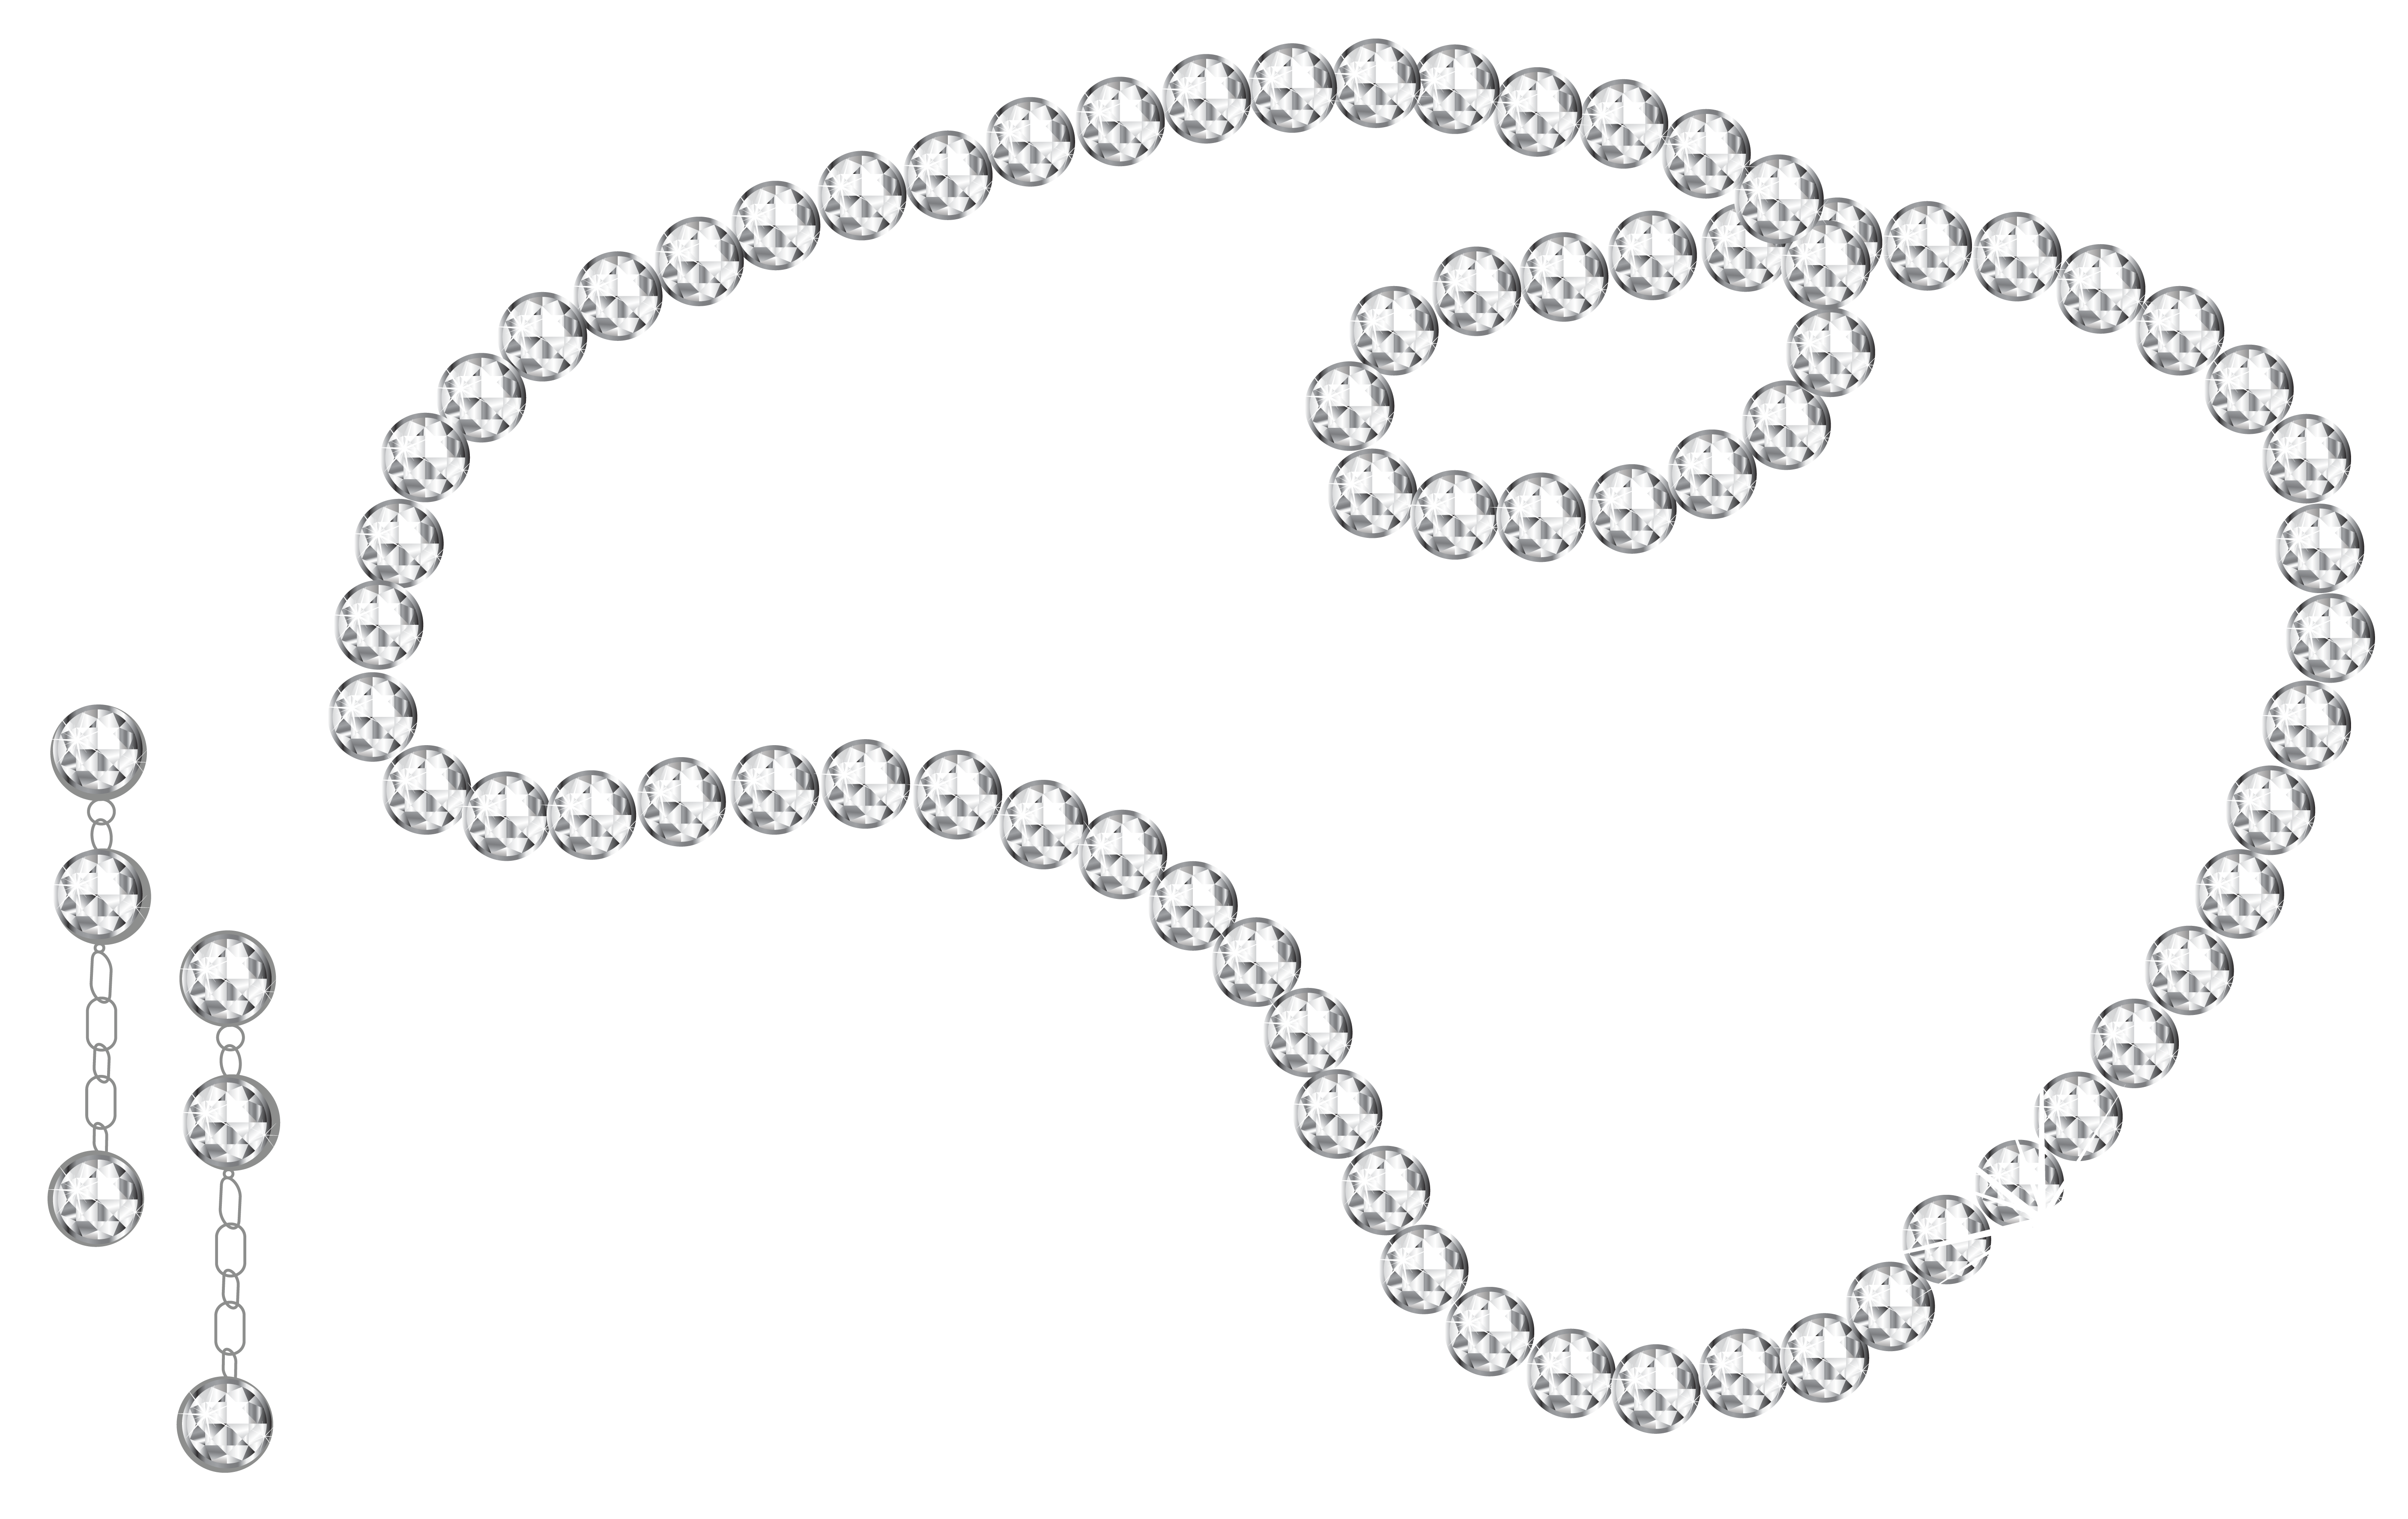 Chain clipart diamond. Necklace and earrings png